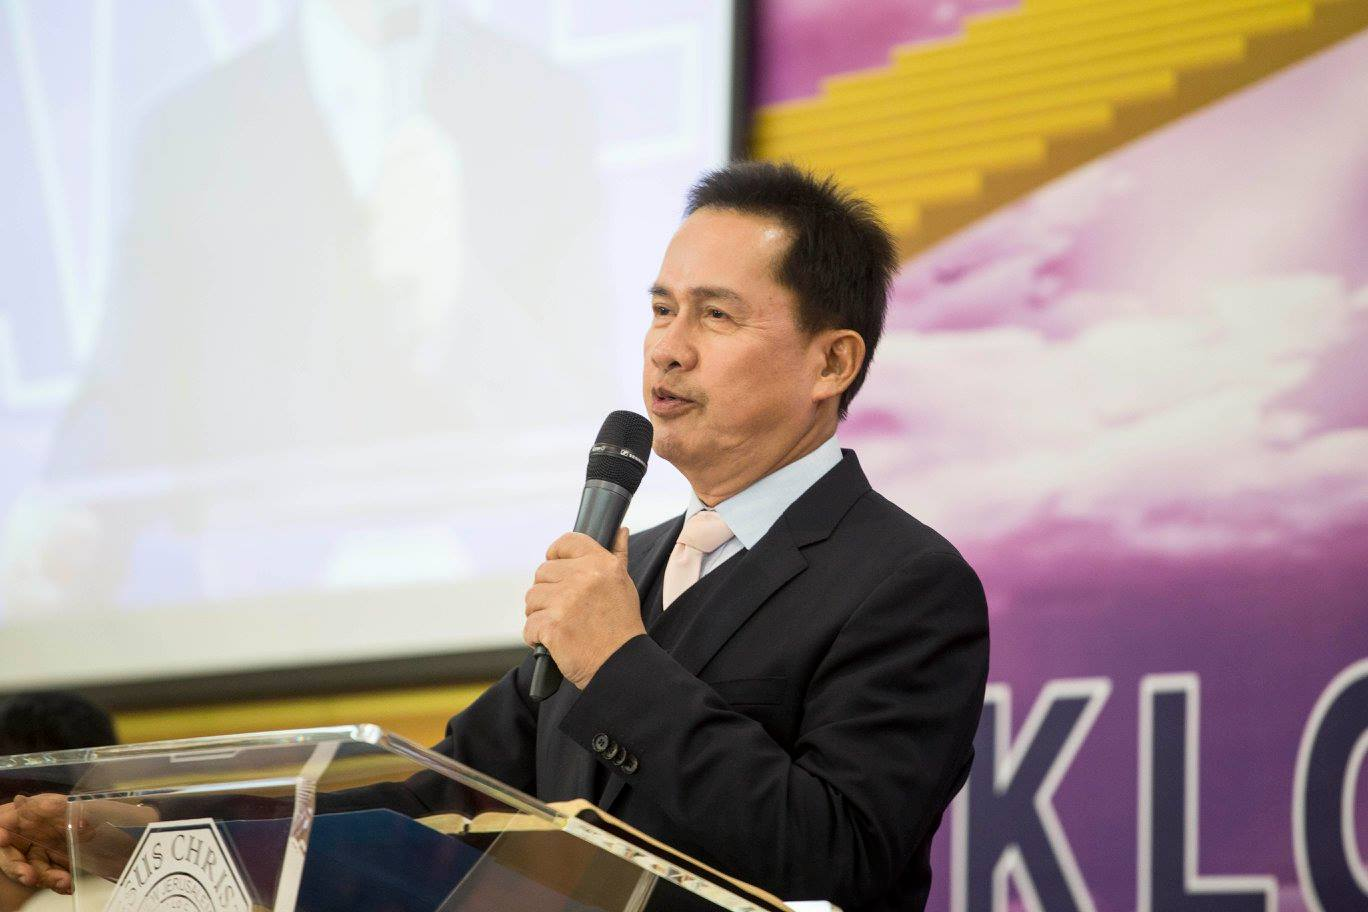 quiboloy, cult leader, false preacher